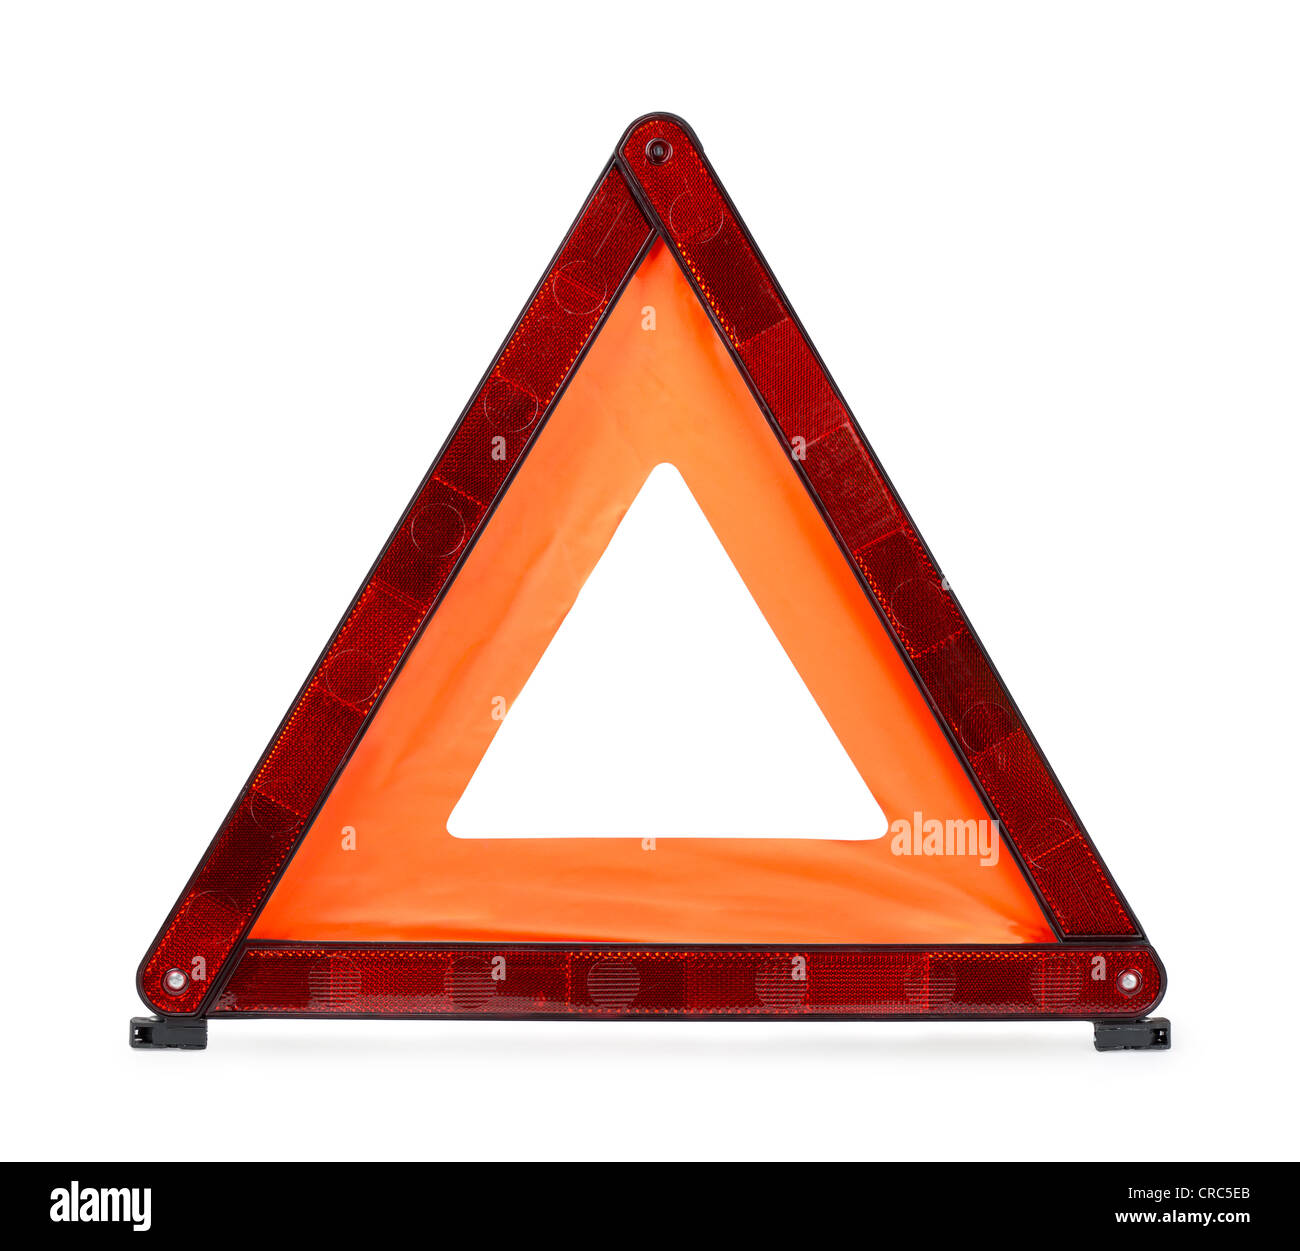 Red reflecting traffic warning triangle isolated on white - Stock Image